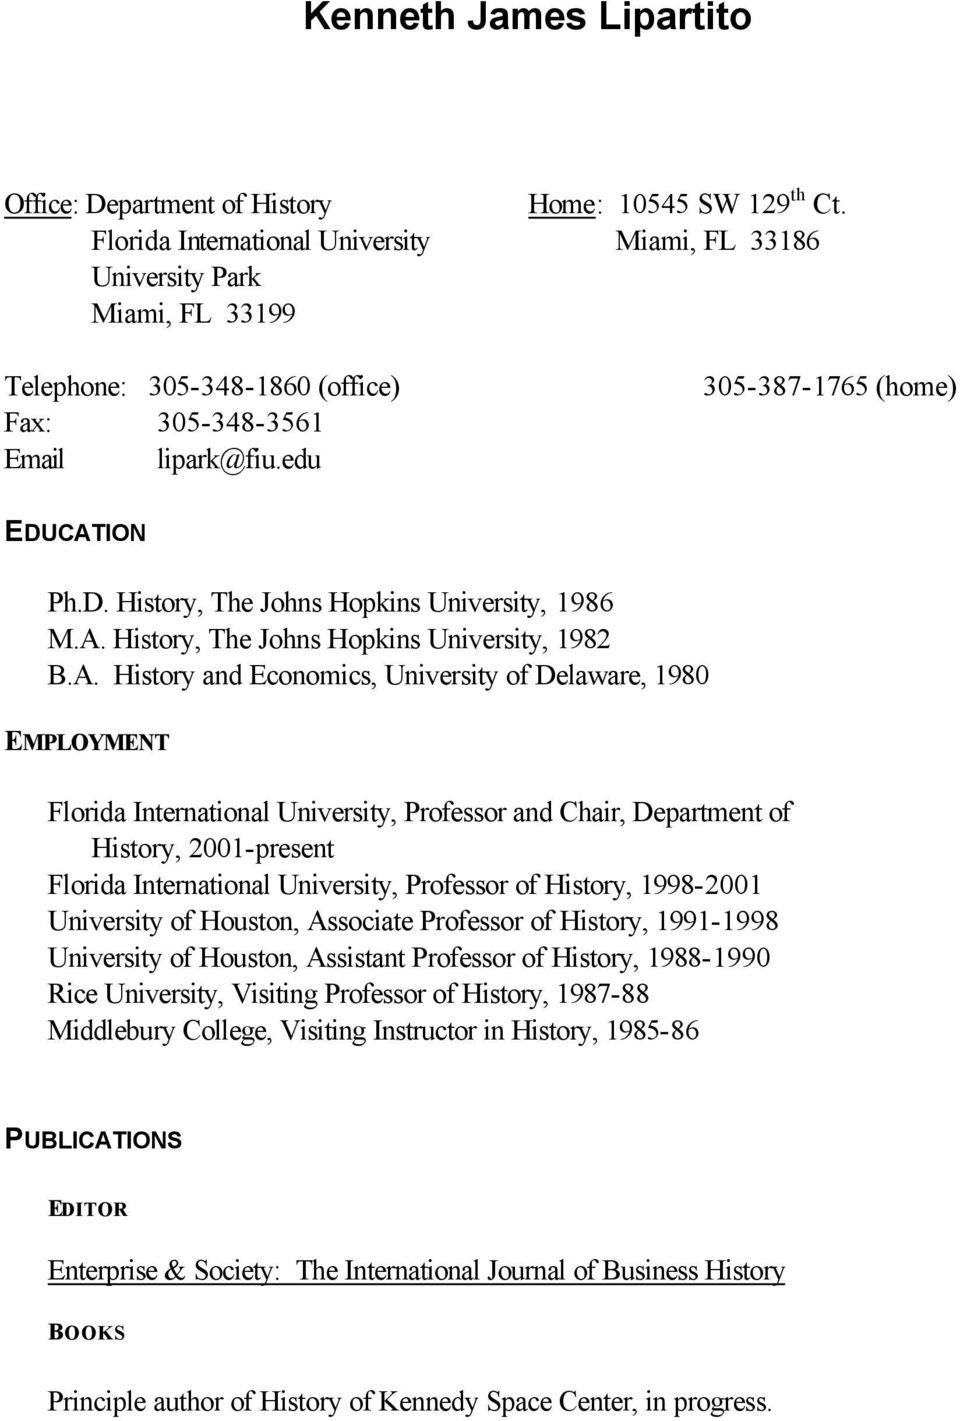 CATION Ph.D. History, The Johns Hopkins University, 1986 M.A. History, The Johns Hopkins University, 1982 B.A. History and Economics, University of Delaware, 1980 EMPLOYMENT Florida International